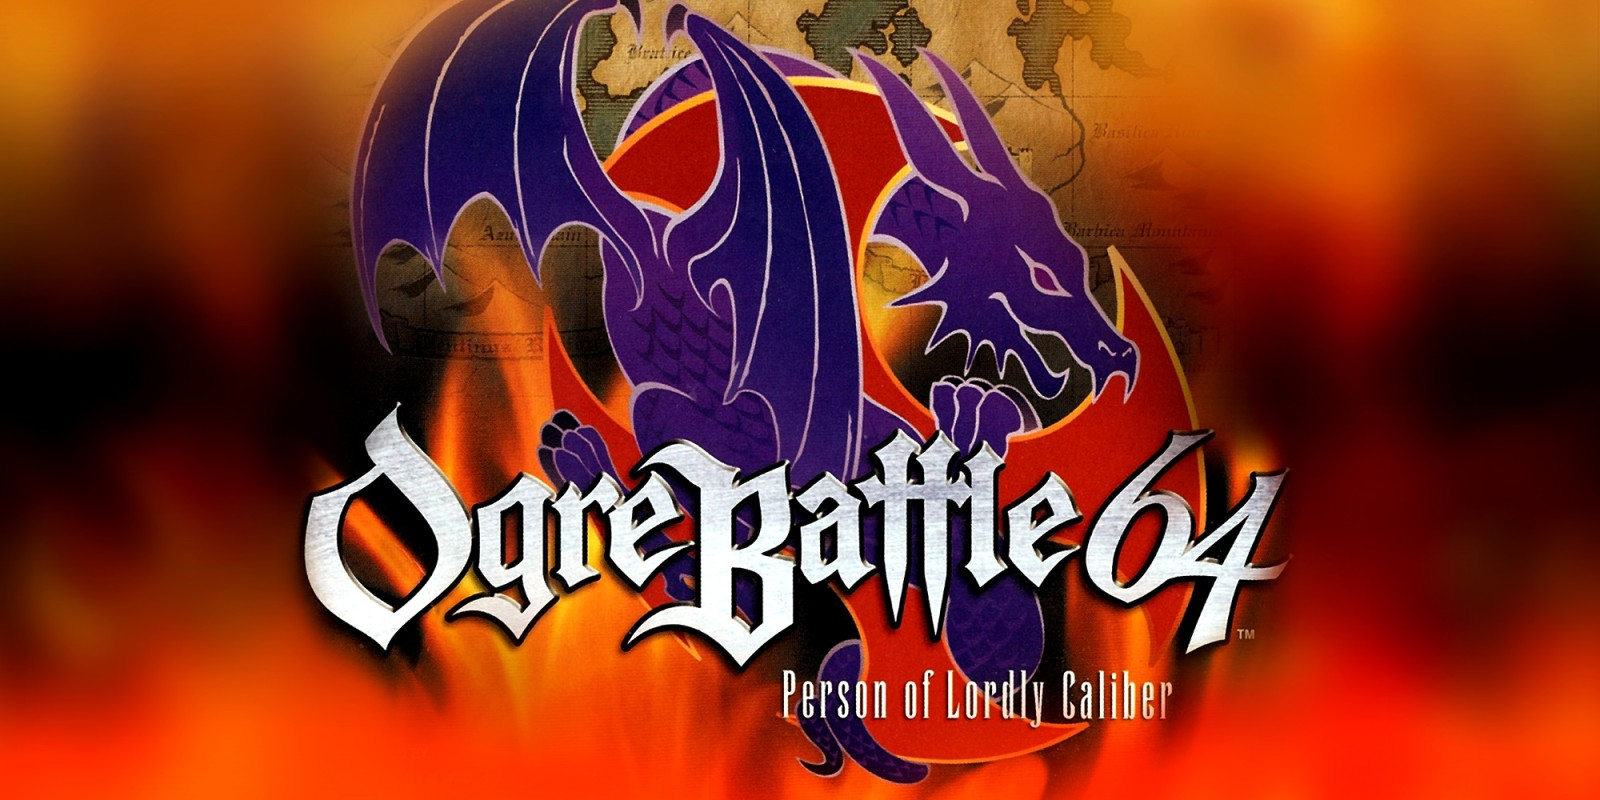 Ogre Battle 64: Person of Lordly Caliber | Nintendo 64